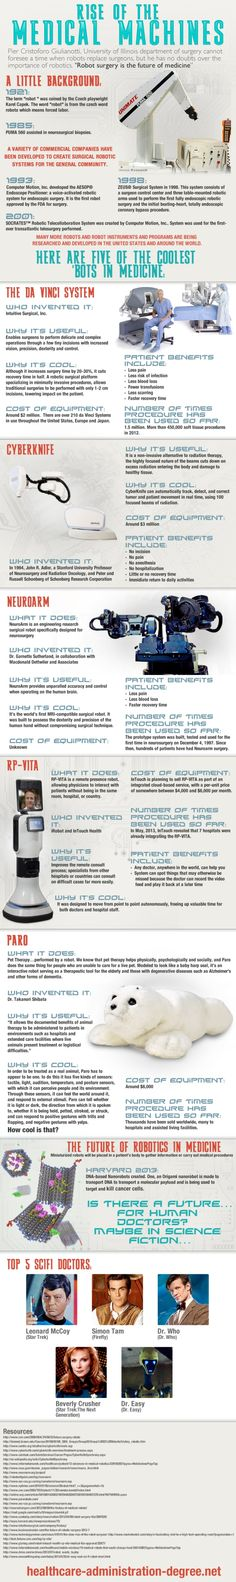 The 39 Best Medical Robots Images On Pinterest Medical Robots